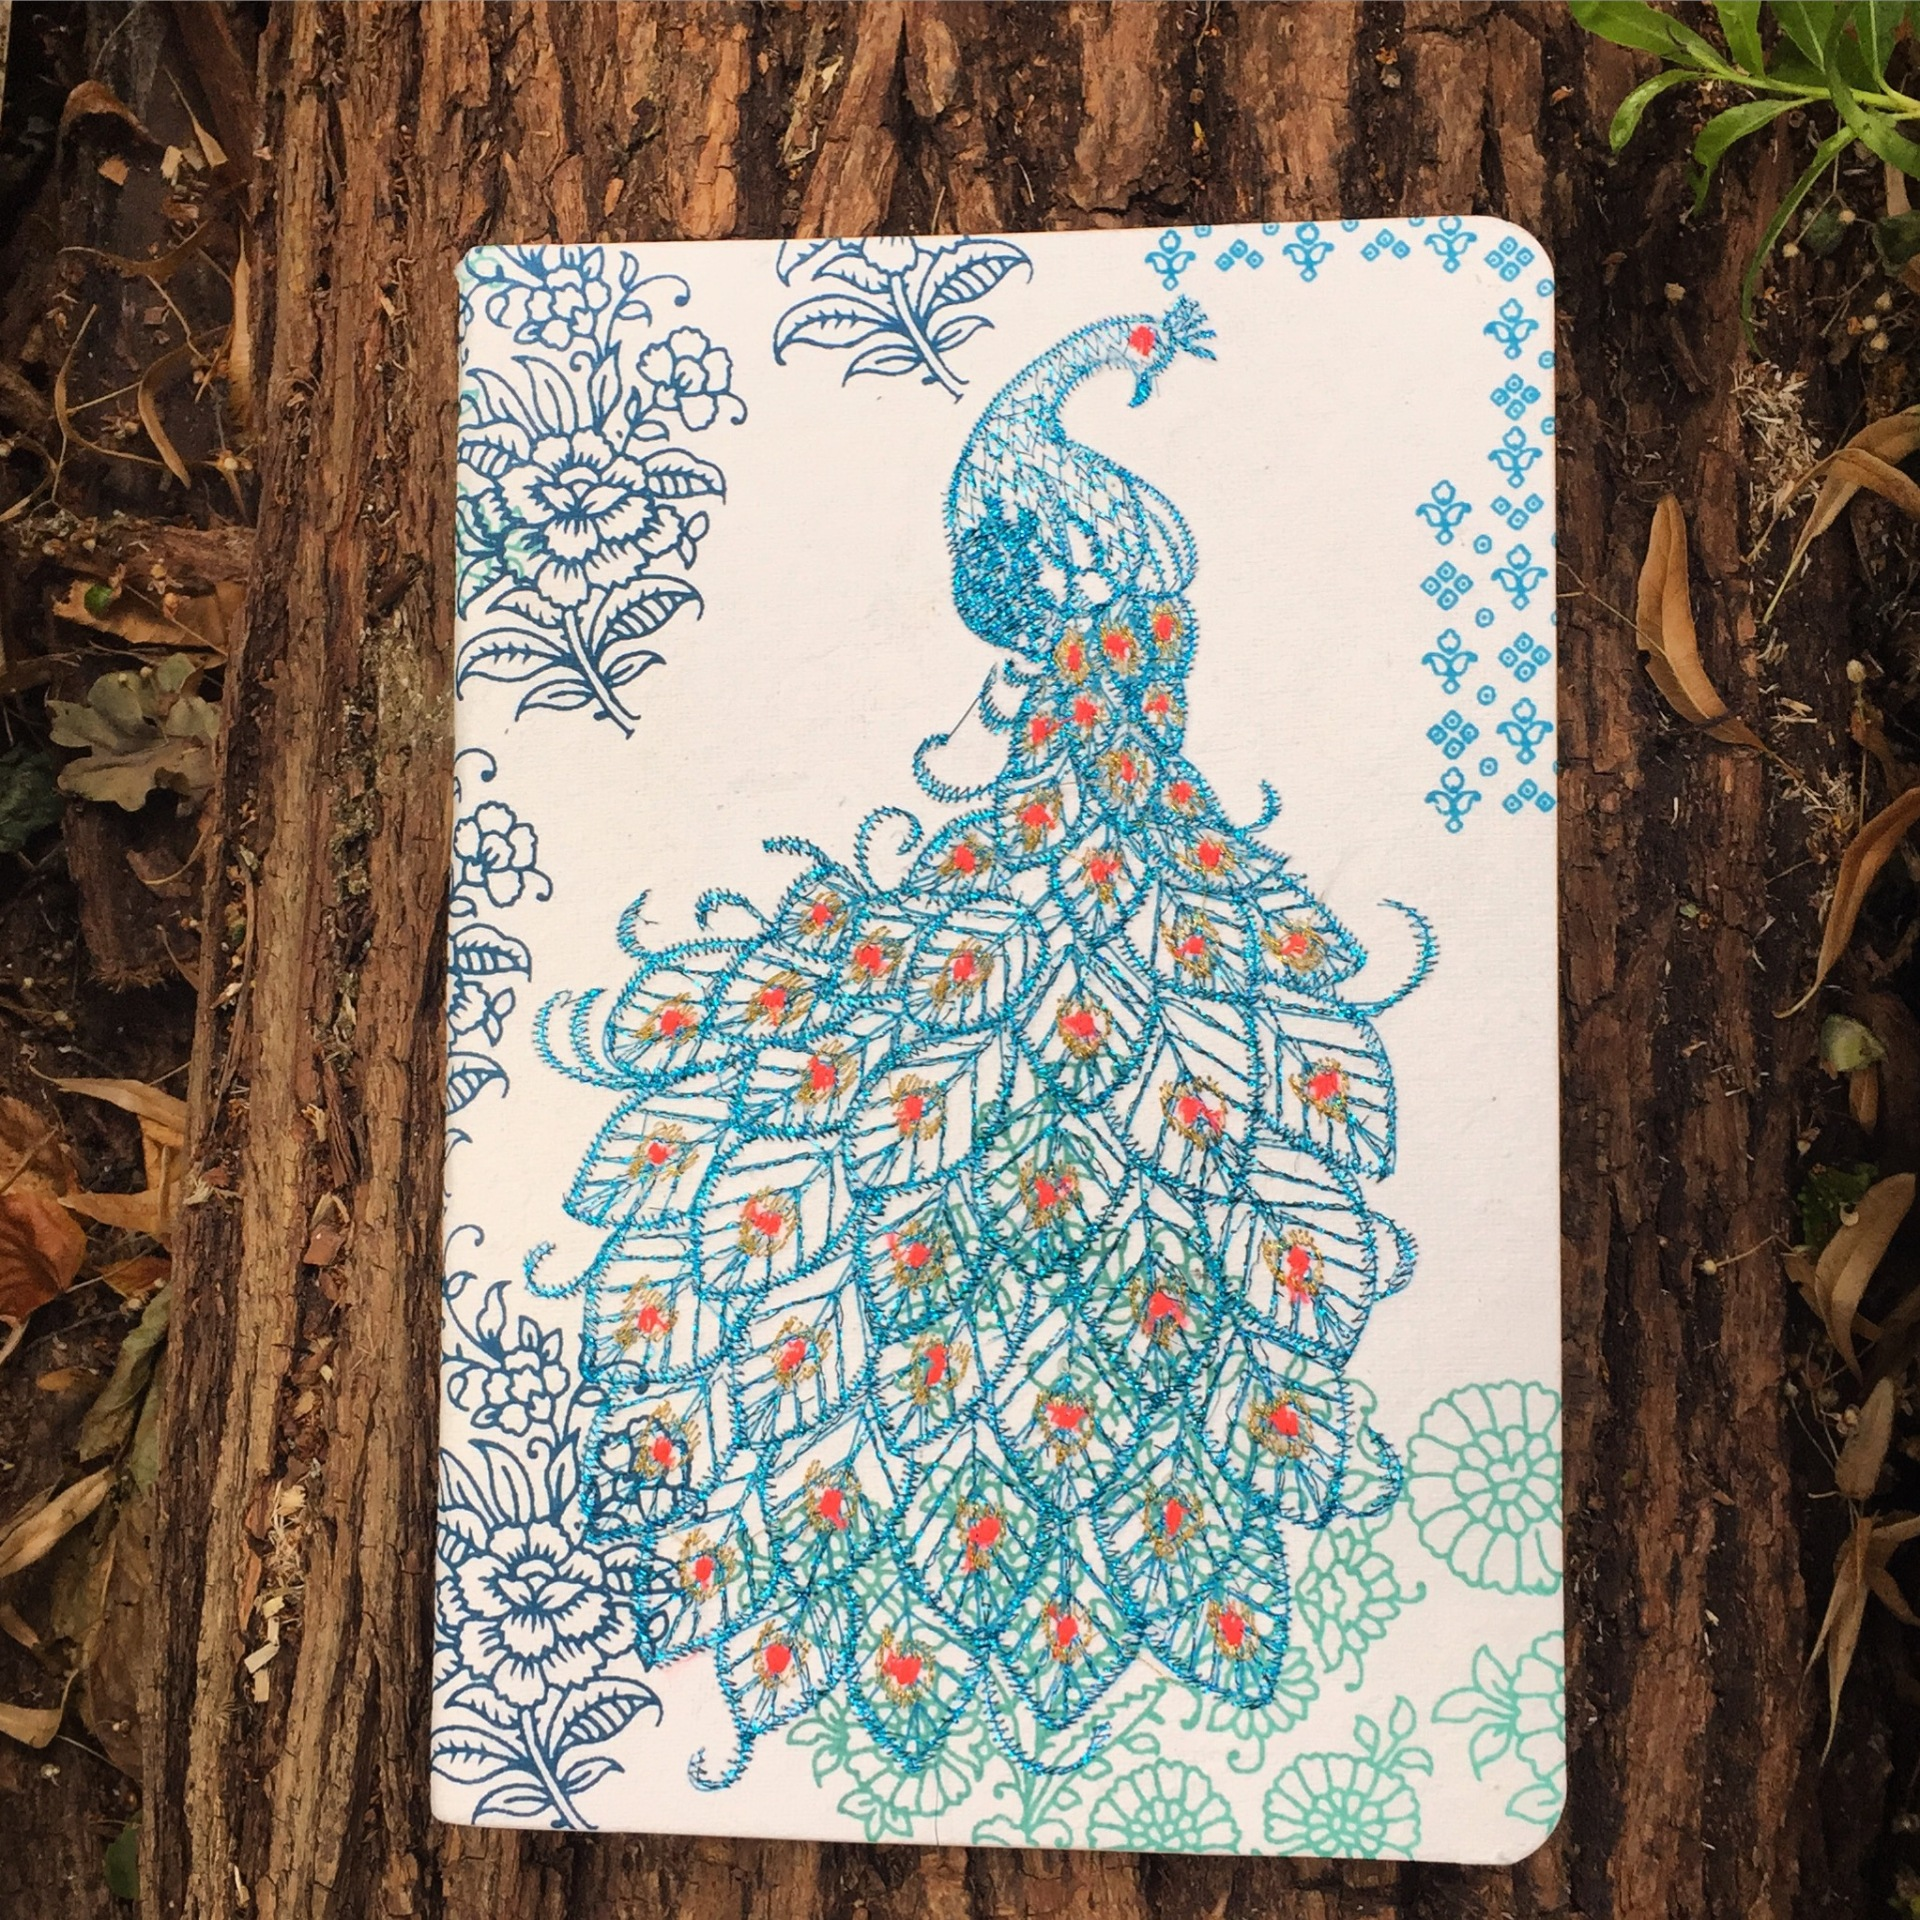 Galison-peacock-journal-notebook